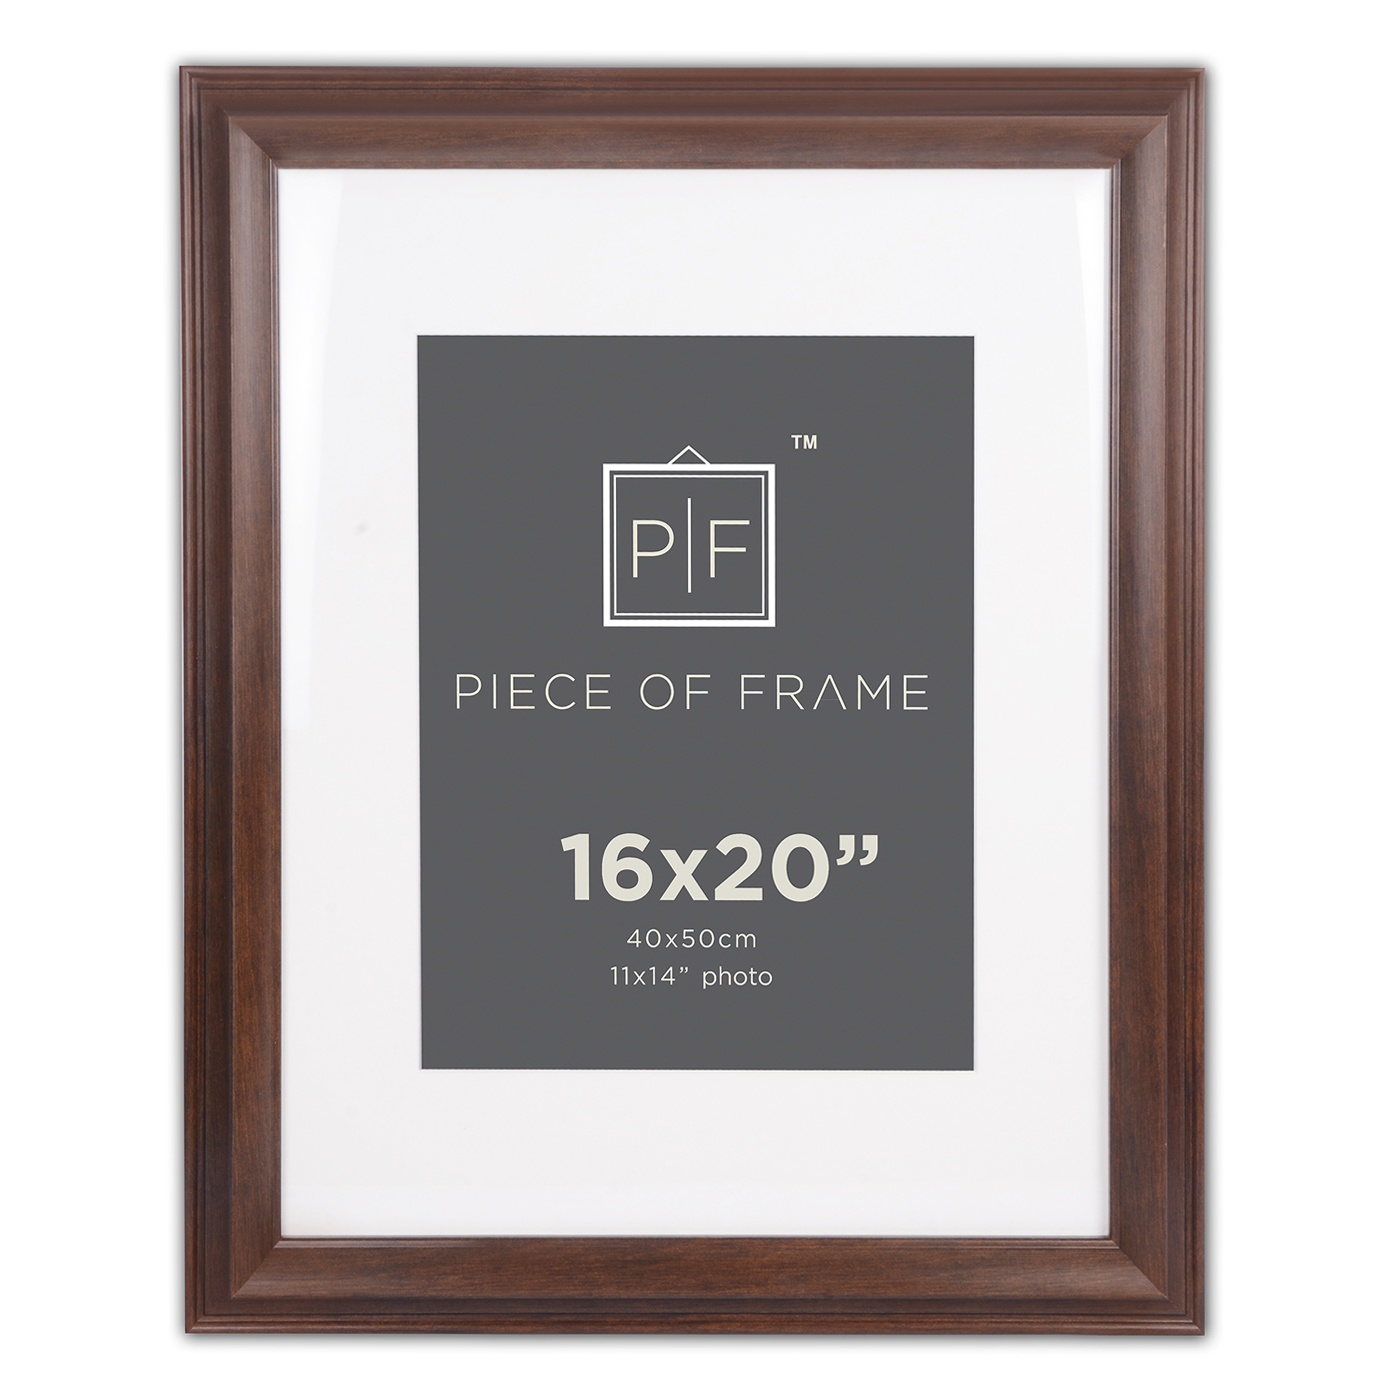 Golden State Art 16x20 Photo Frame 1 5 Inch With Ivory